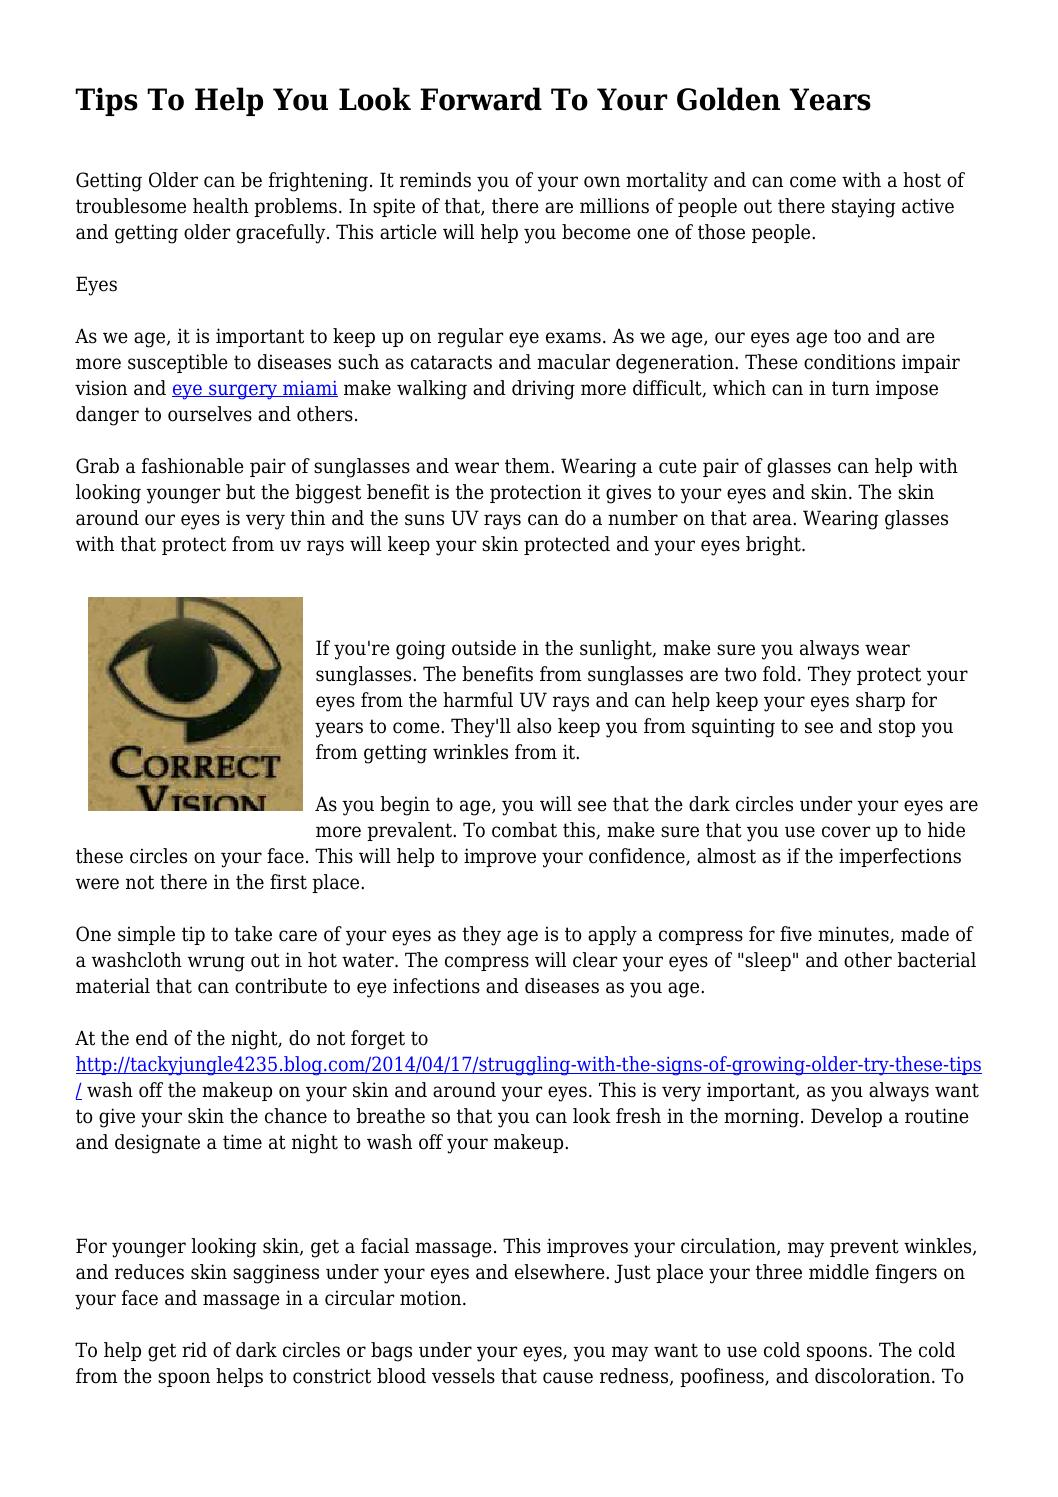 tips to help you look forward to your golden years bytips to help you look forward to your golden years by rebeltimetable985 issuu